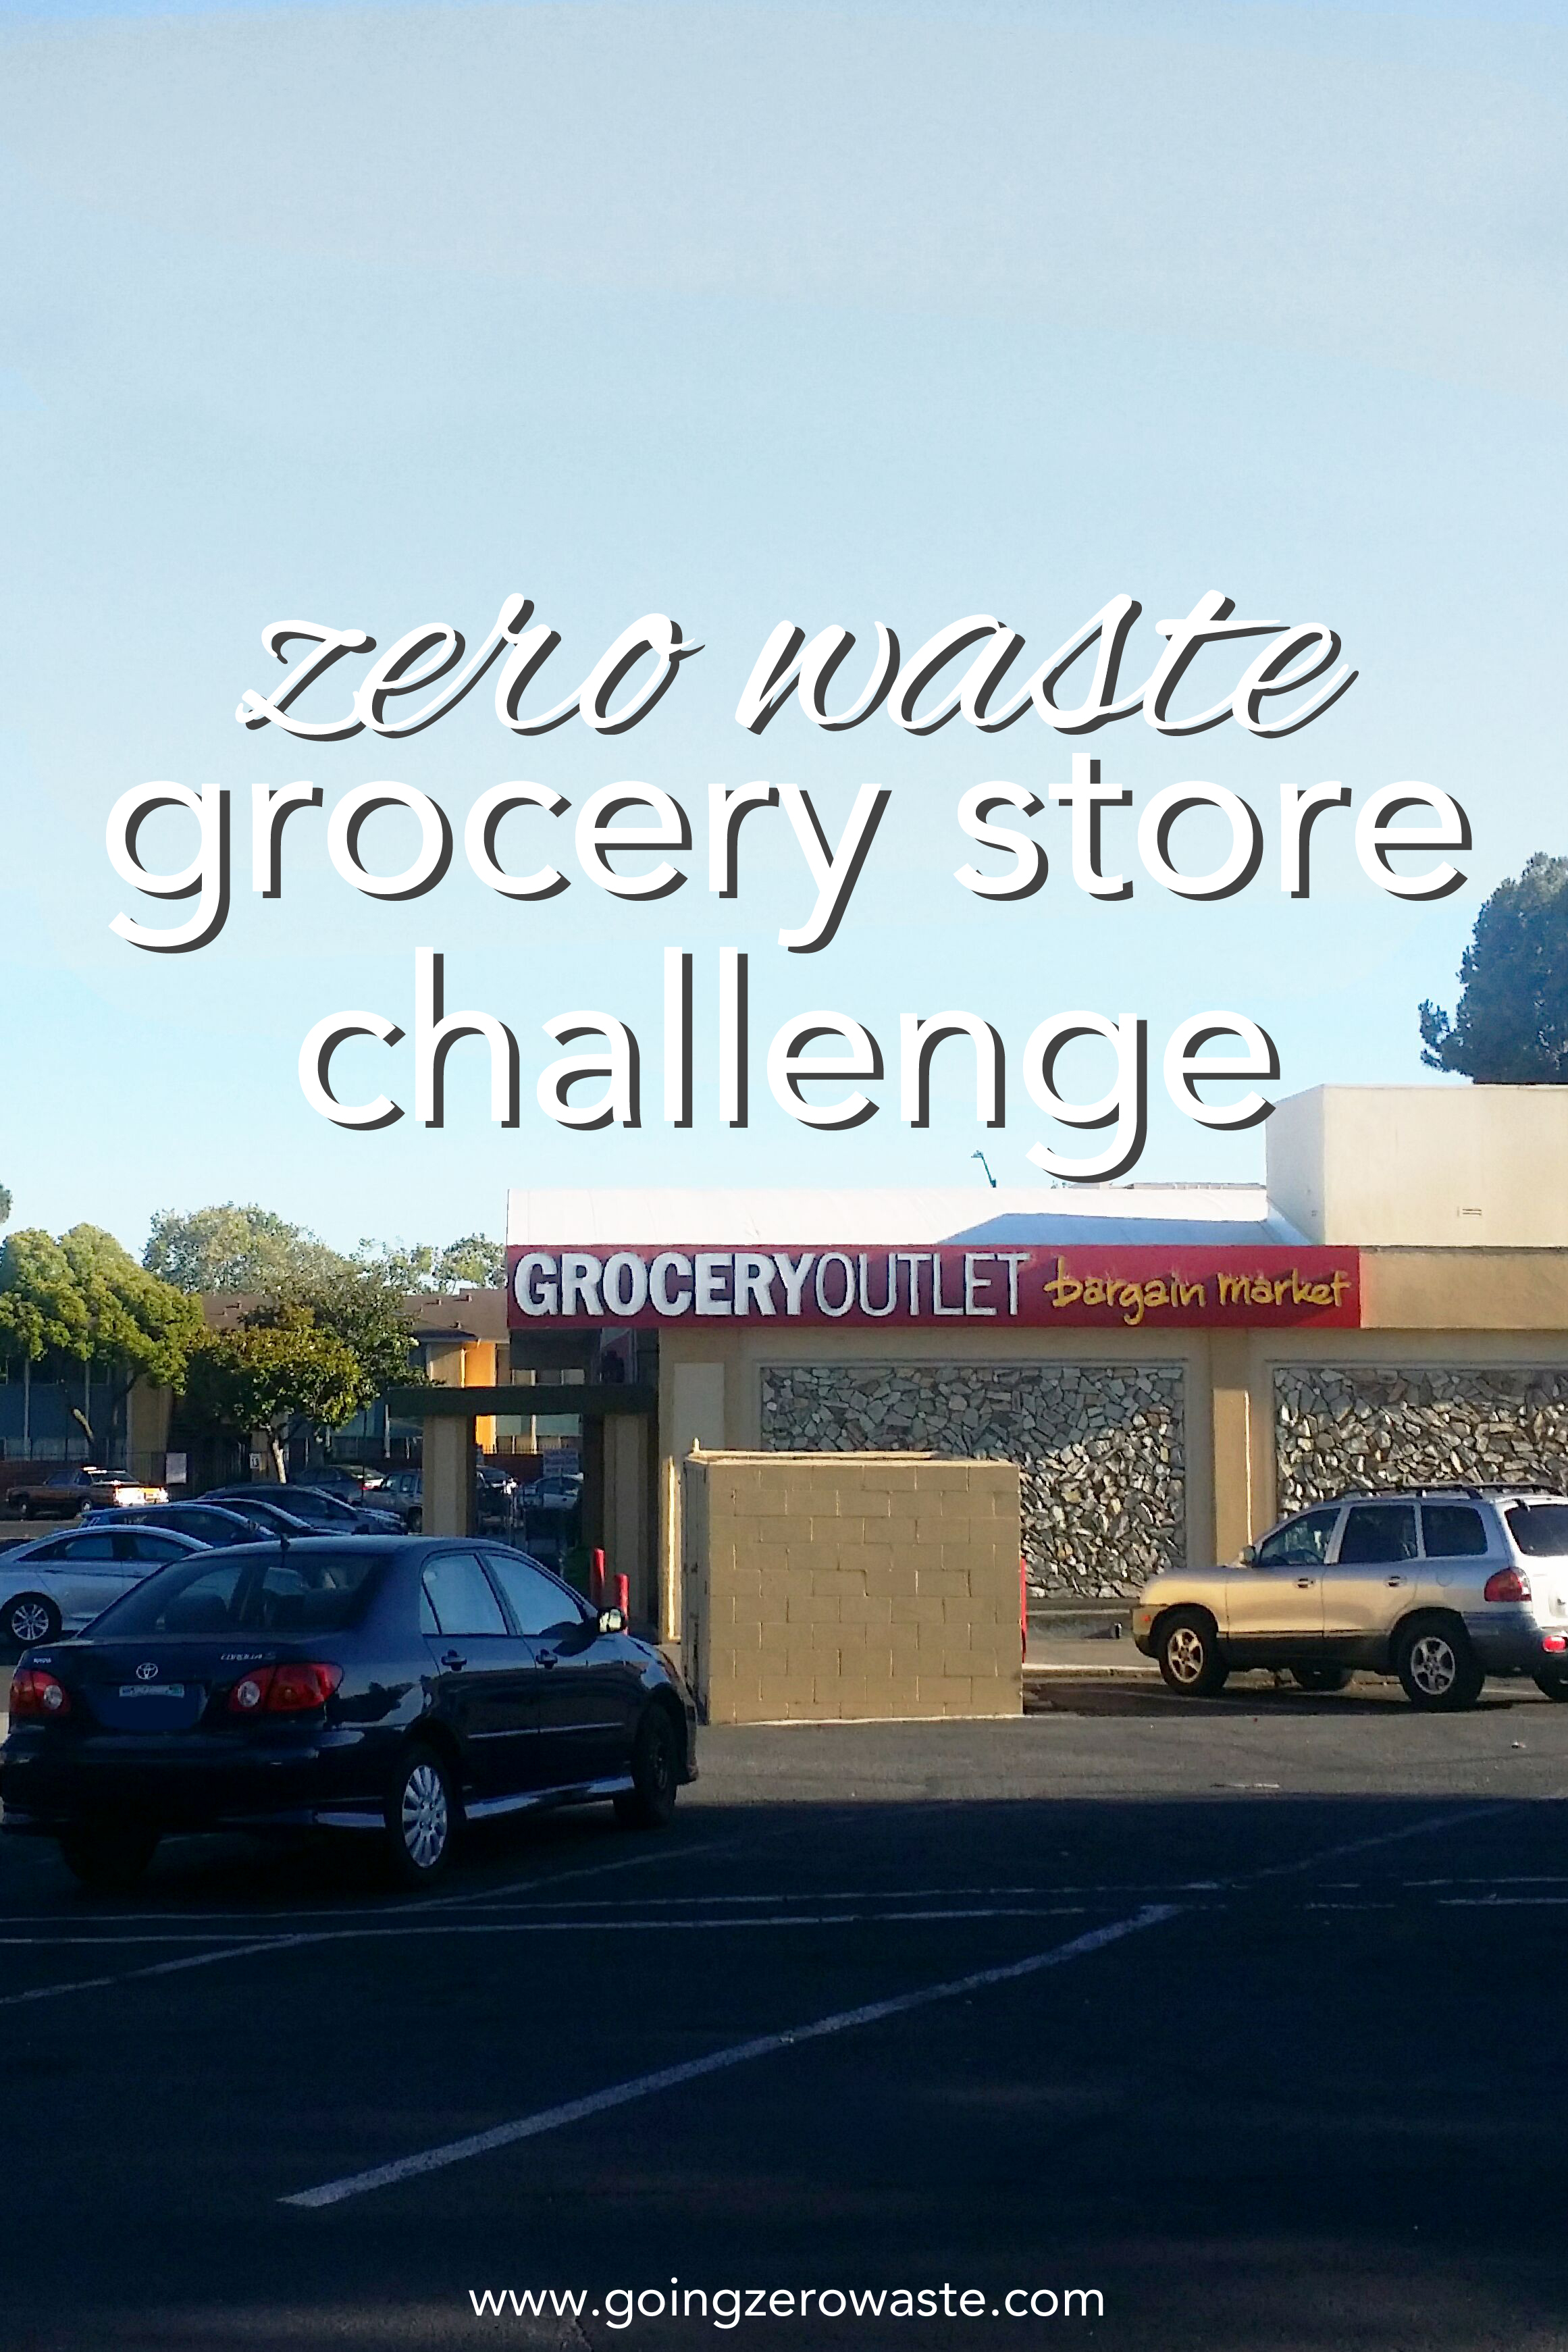 The zero waste grocery store challenge at grocery outlet from www.goingzerowaste.com